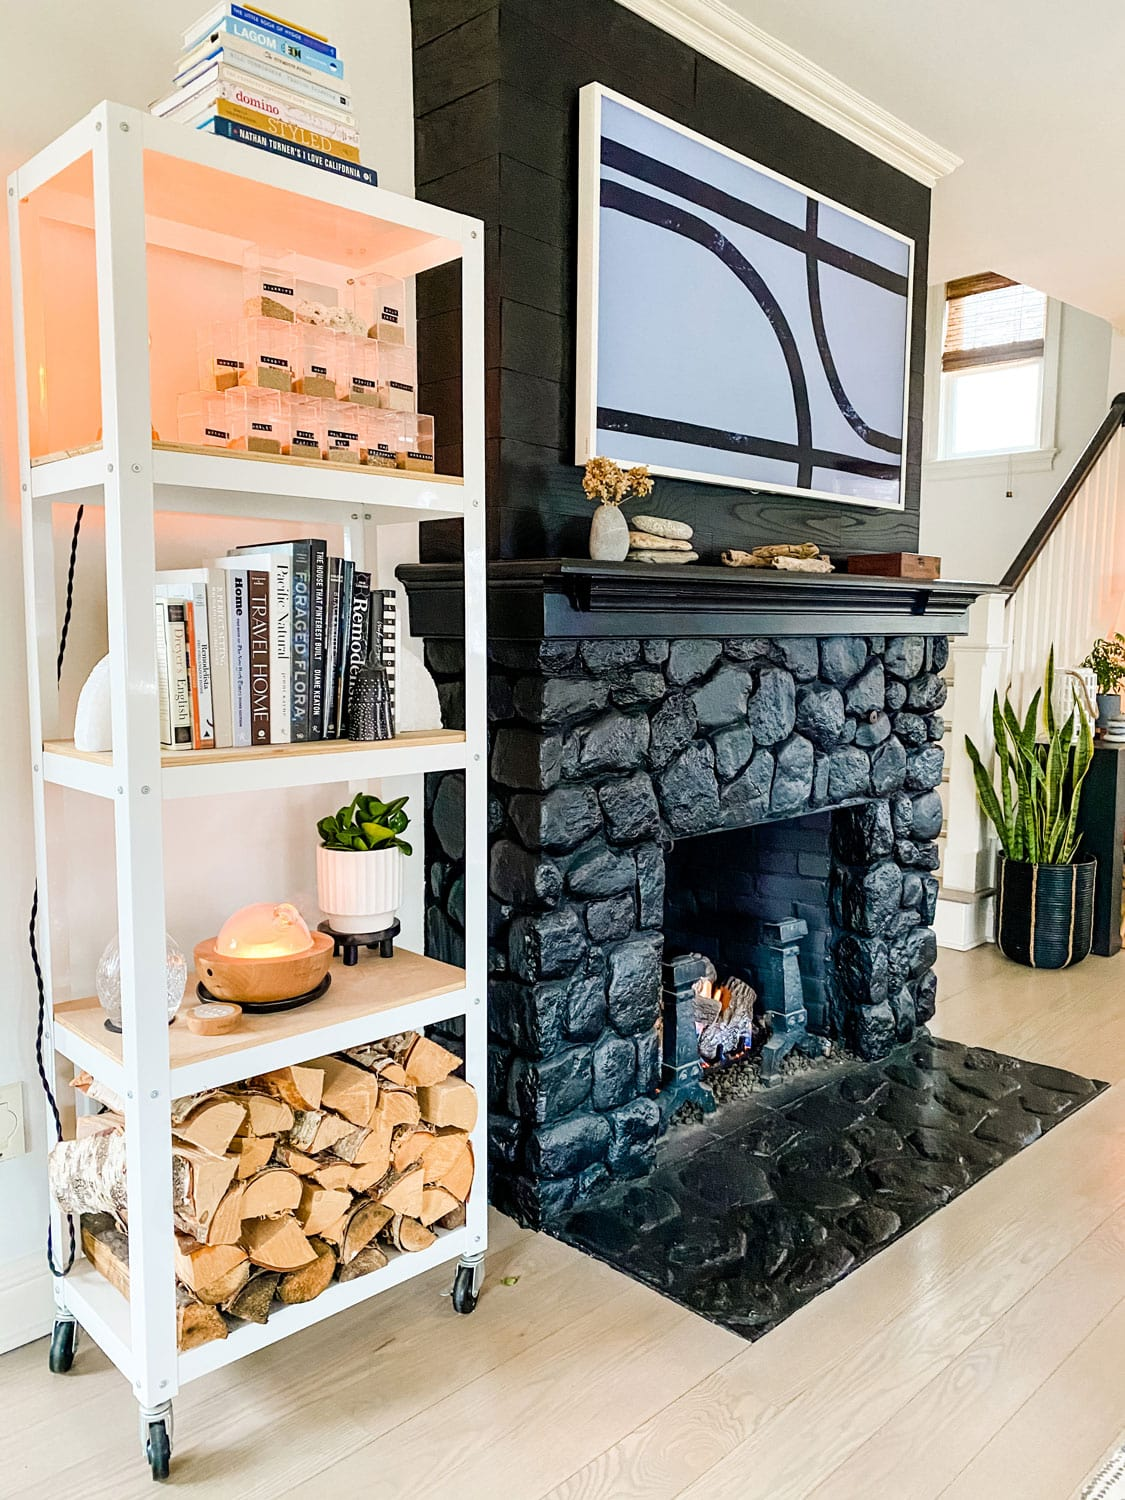 Black painted stone fireplace with Samsunf Frame TV